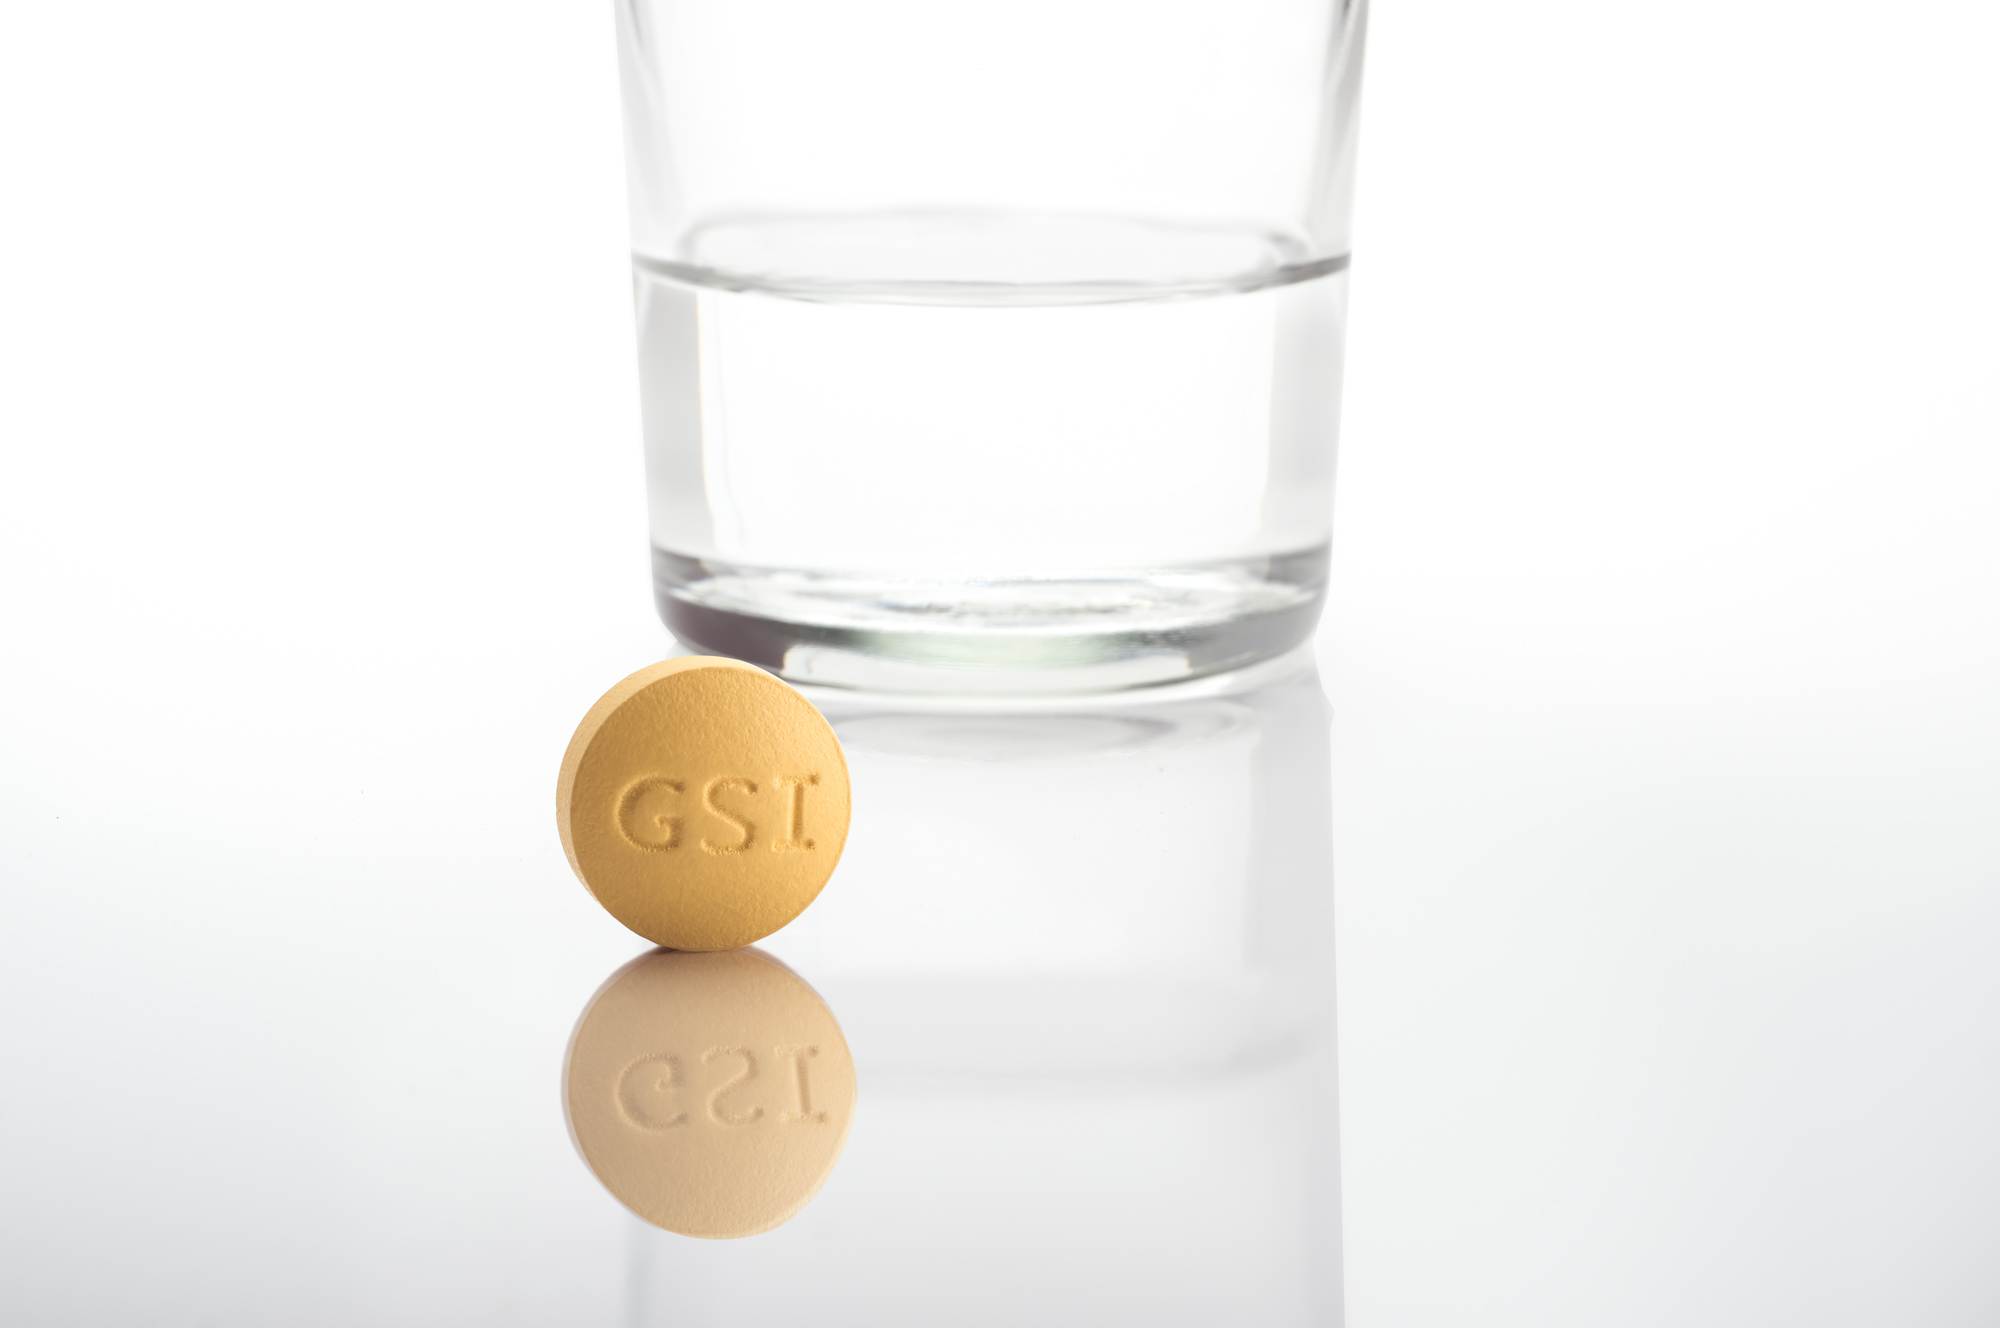 Pharmaceutical still life photography of medical product launch.